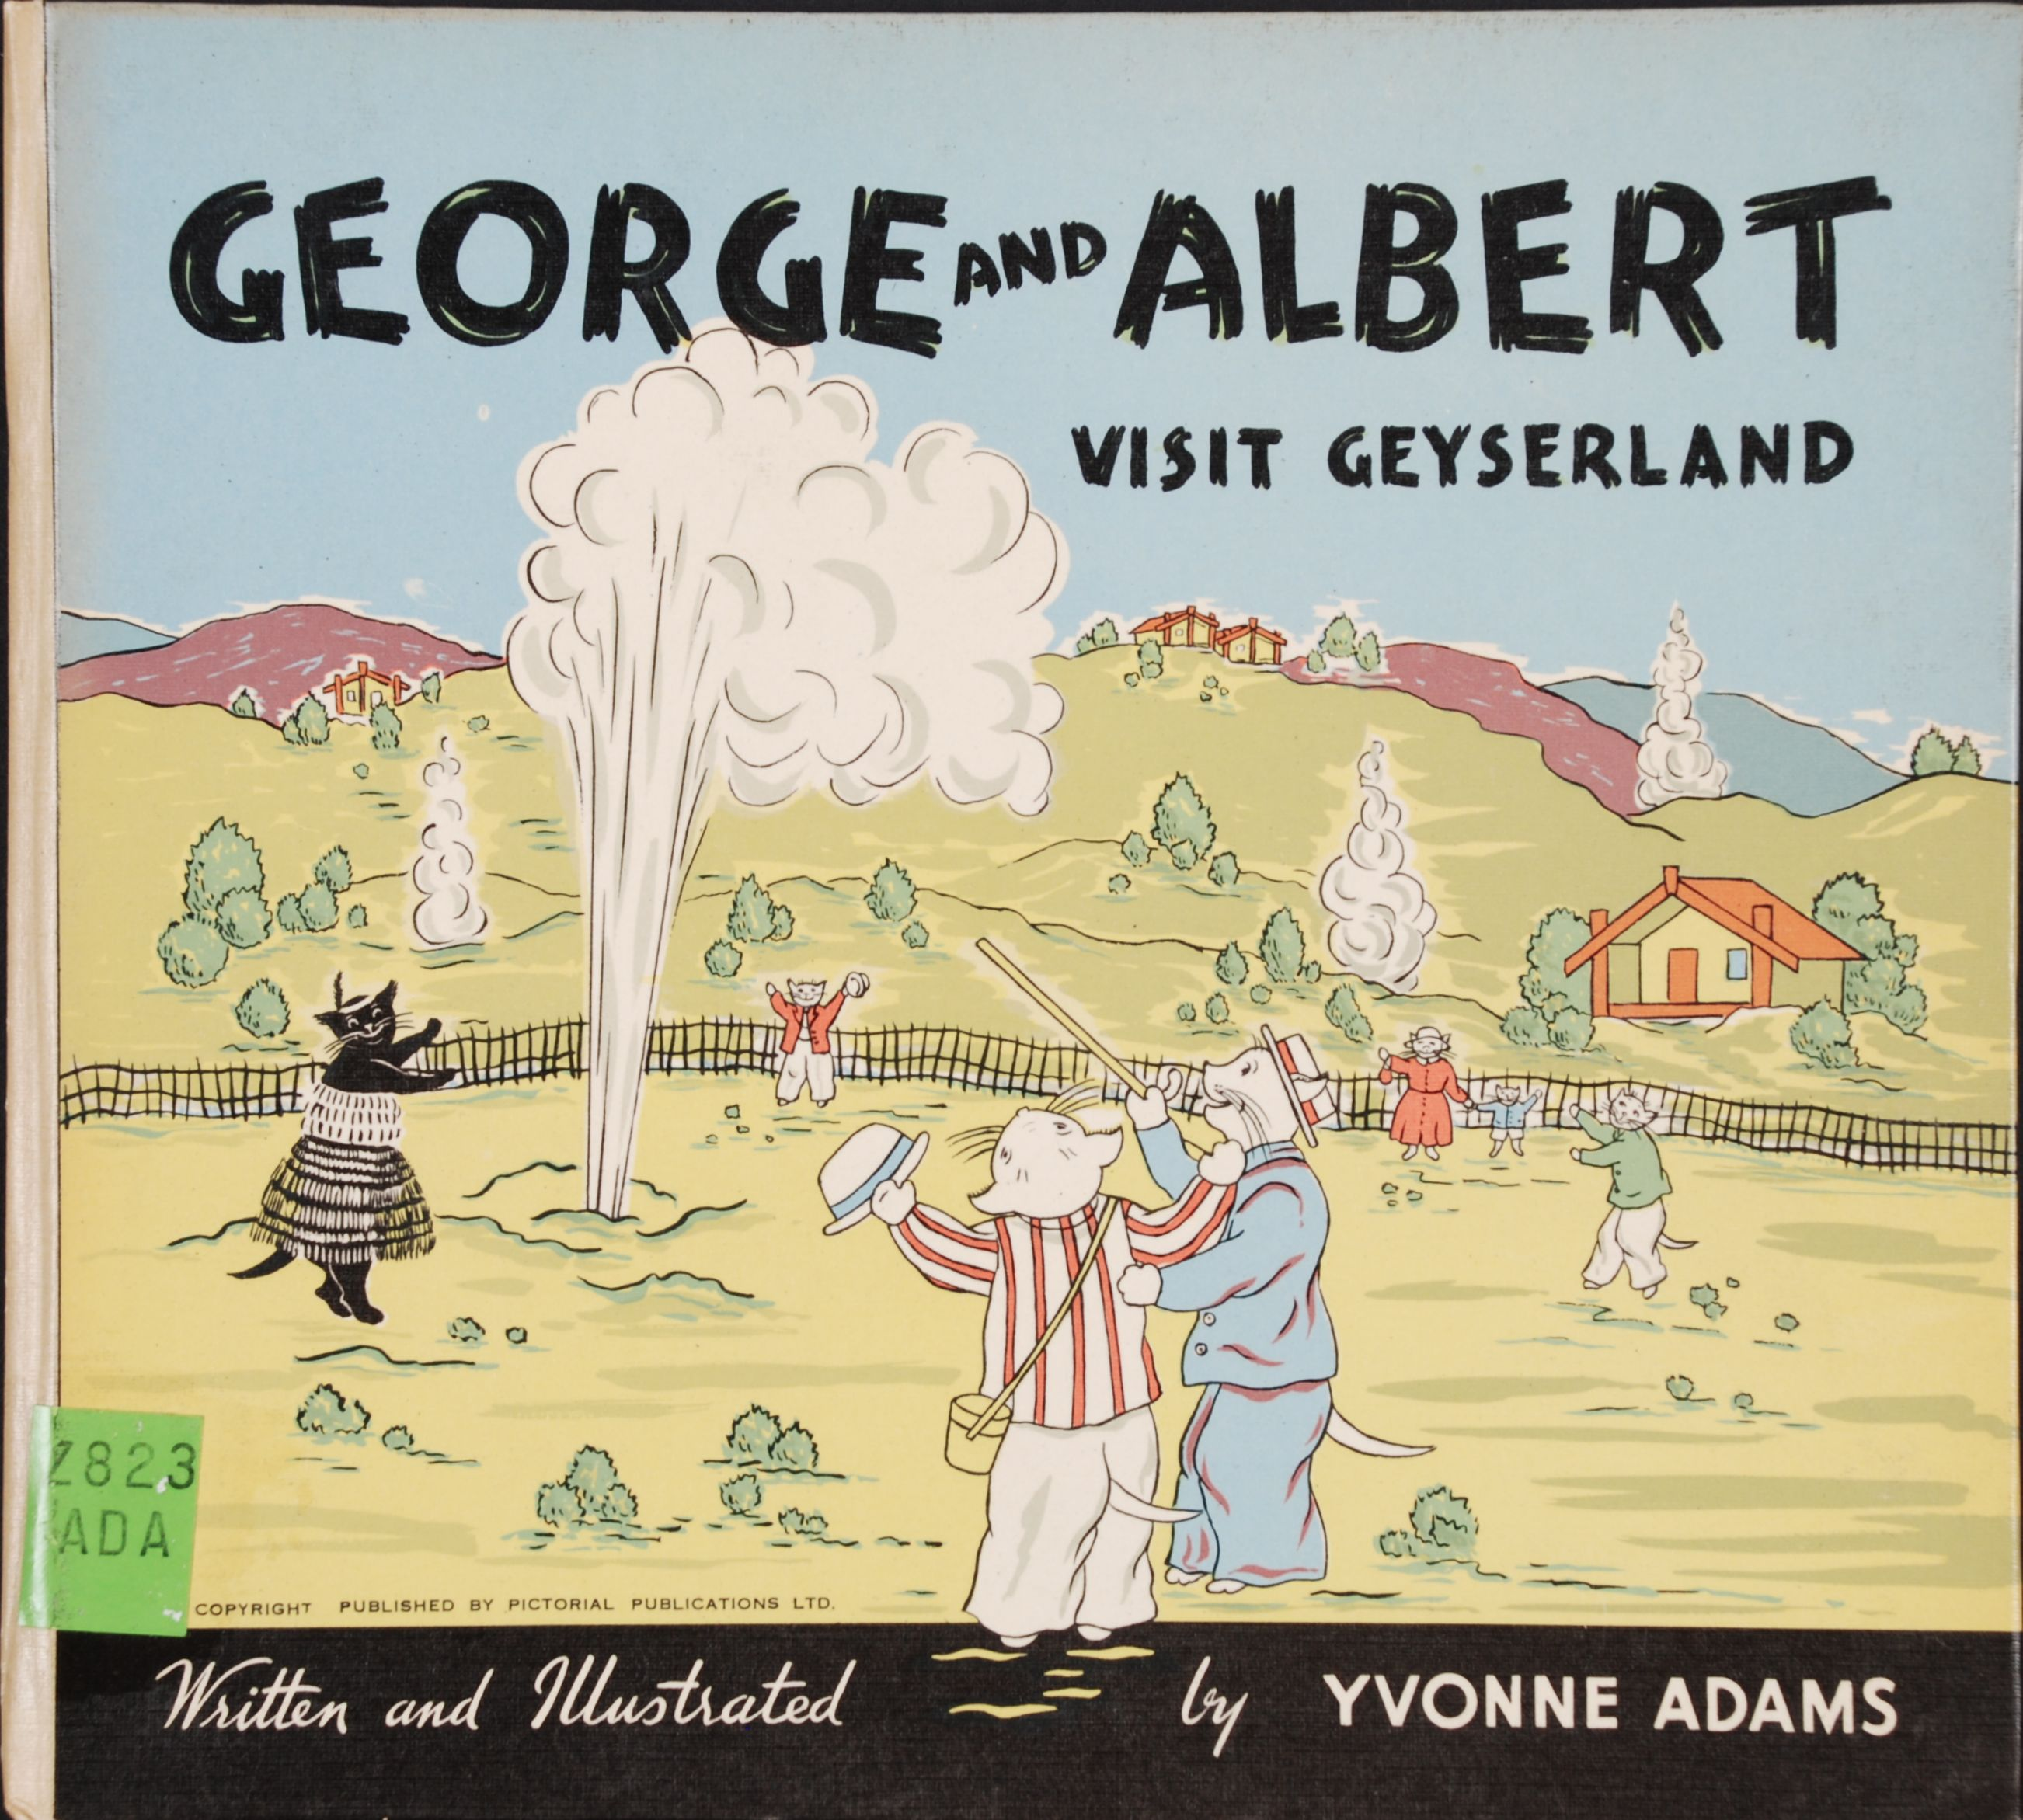 Yvonne Adams. George and Albert Snowywhiskers visit Geyserland. Hastings, N.Z.: Pictorial Publications Ltd., [1952].